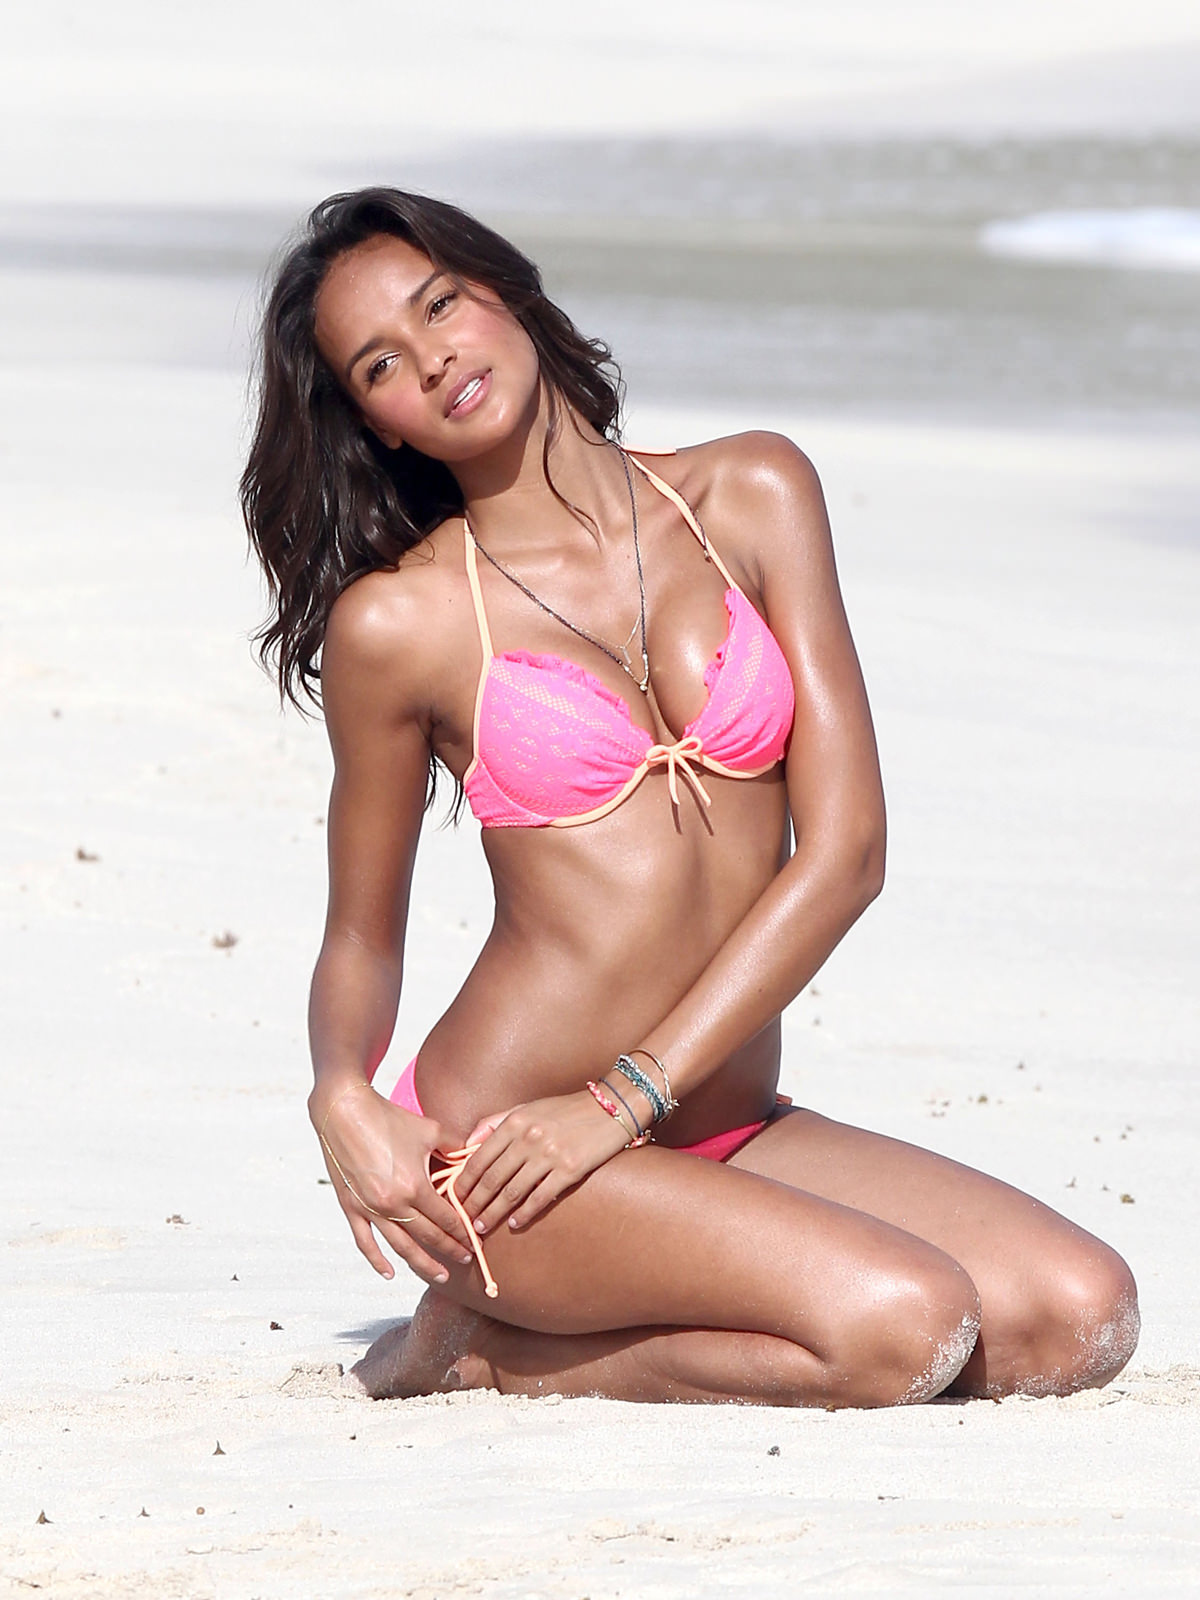 Gracie Carvalho Photo Gallery